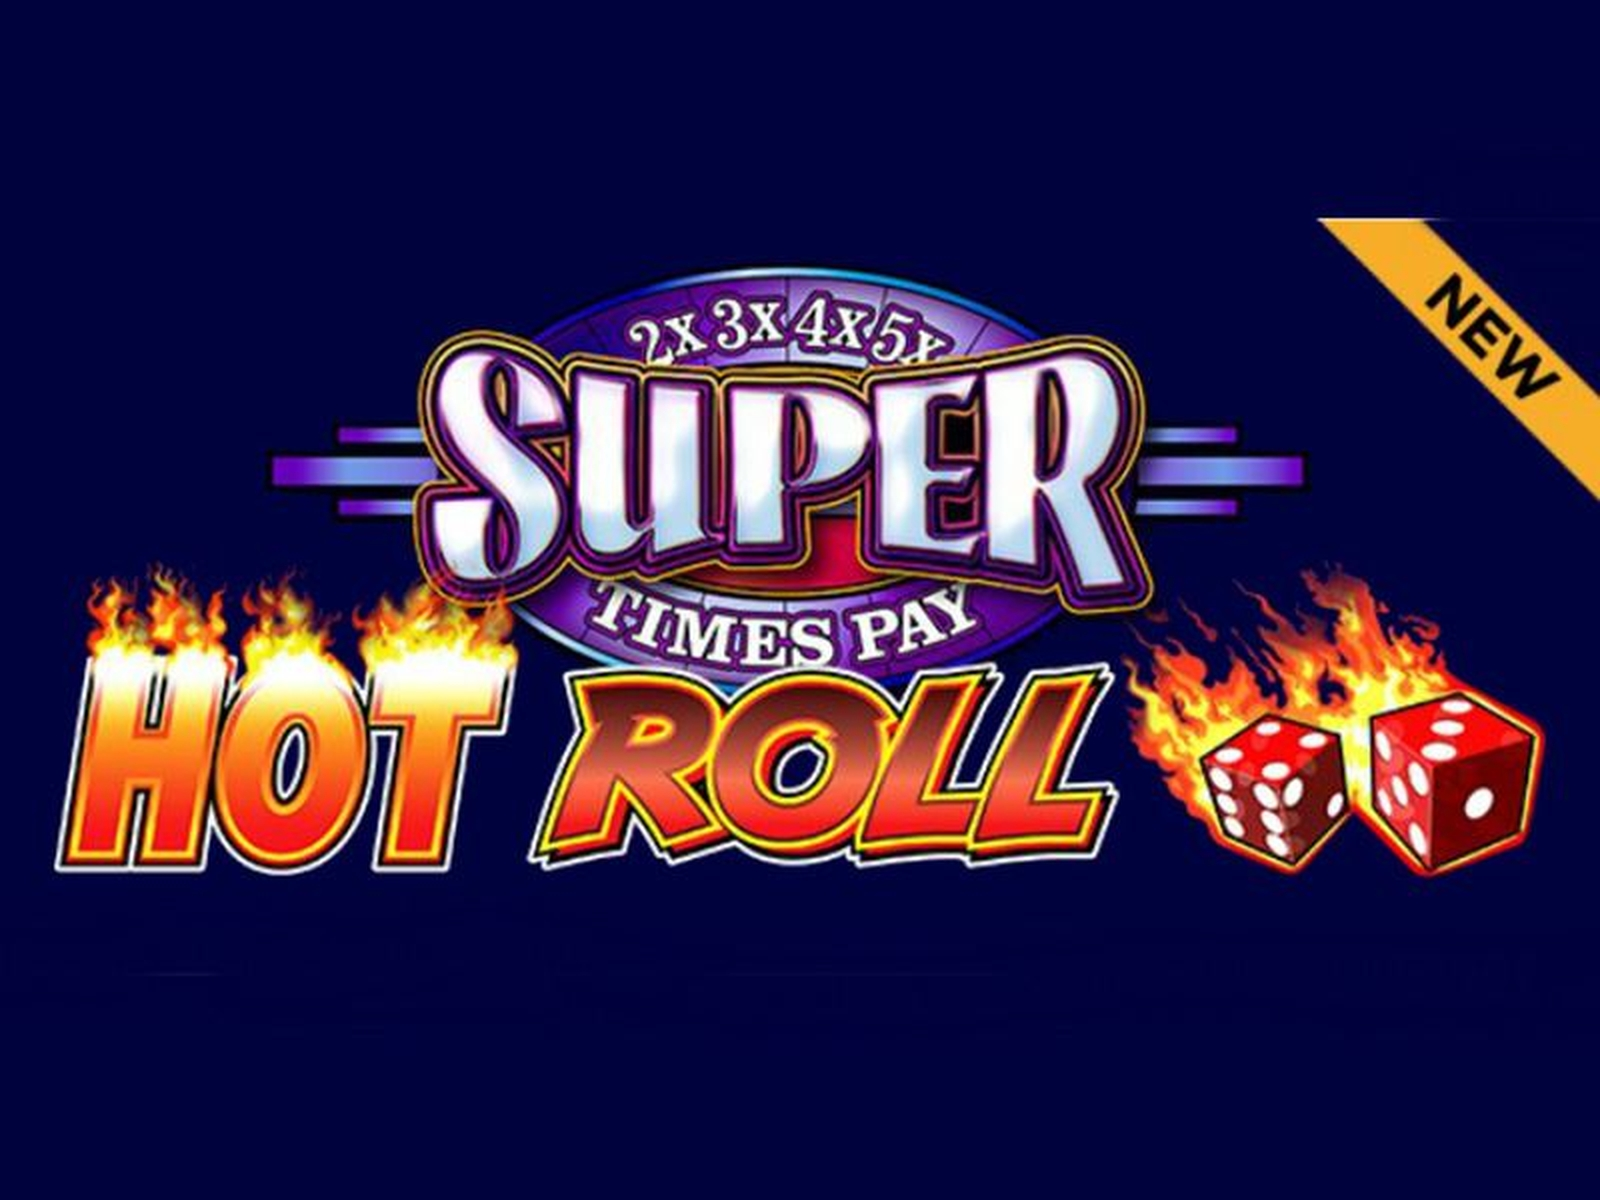 The Super Times Pay Hot Roll Online Slot Demo Game by IGT